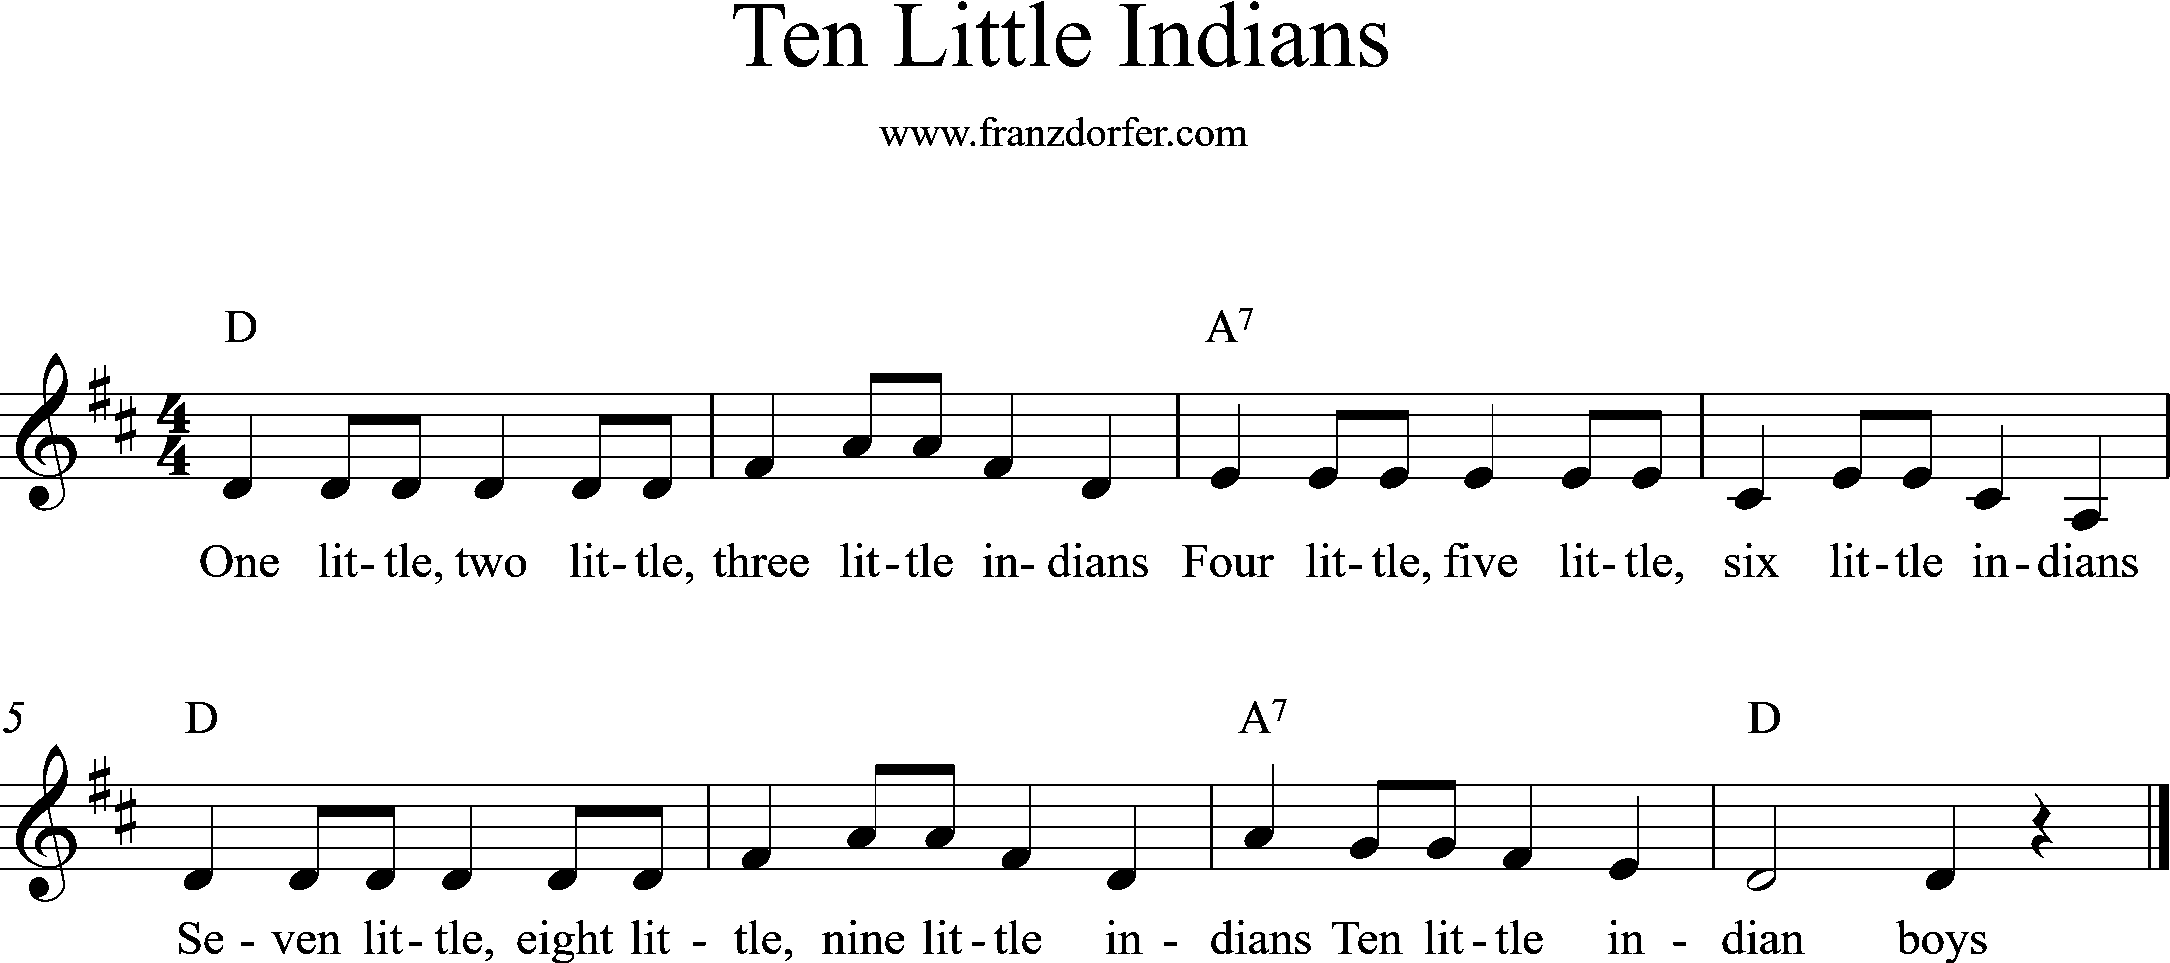 Ten little Indians, D-Major